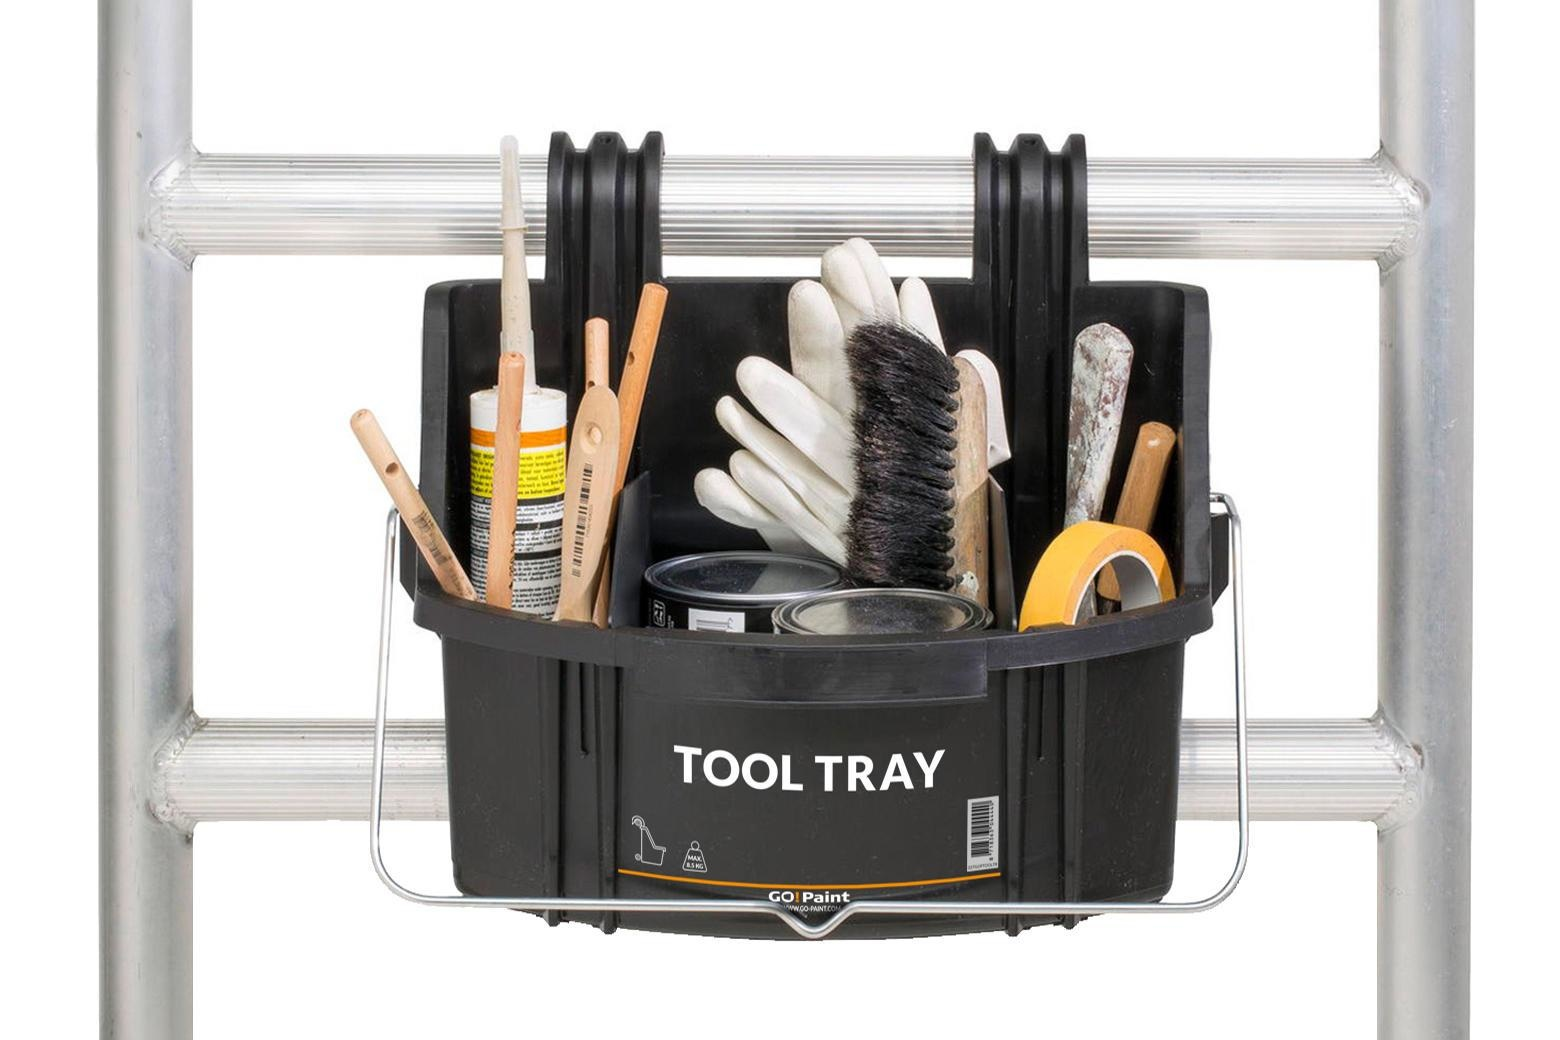 Go!Paint Tool Tray